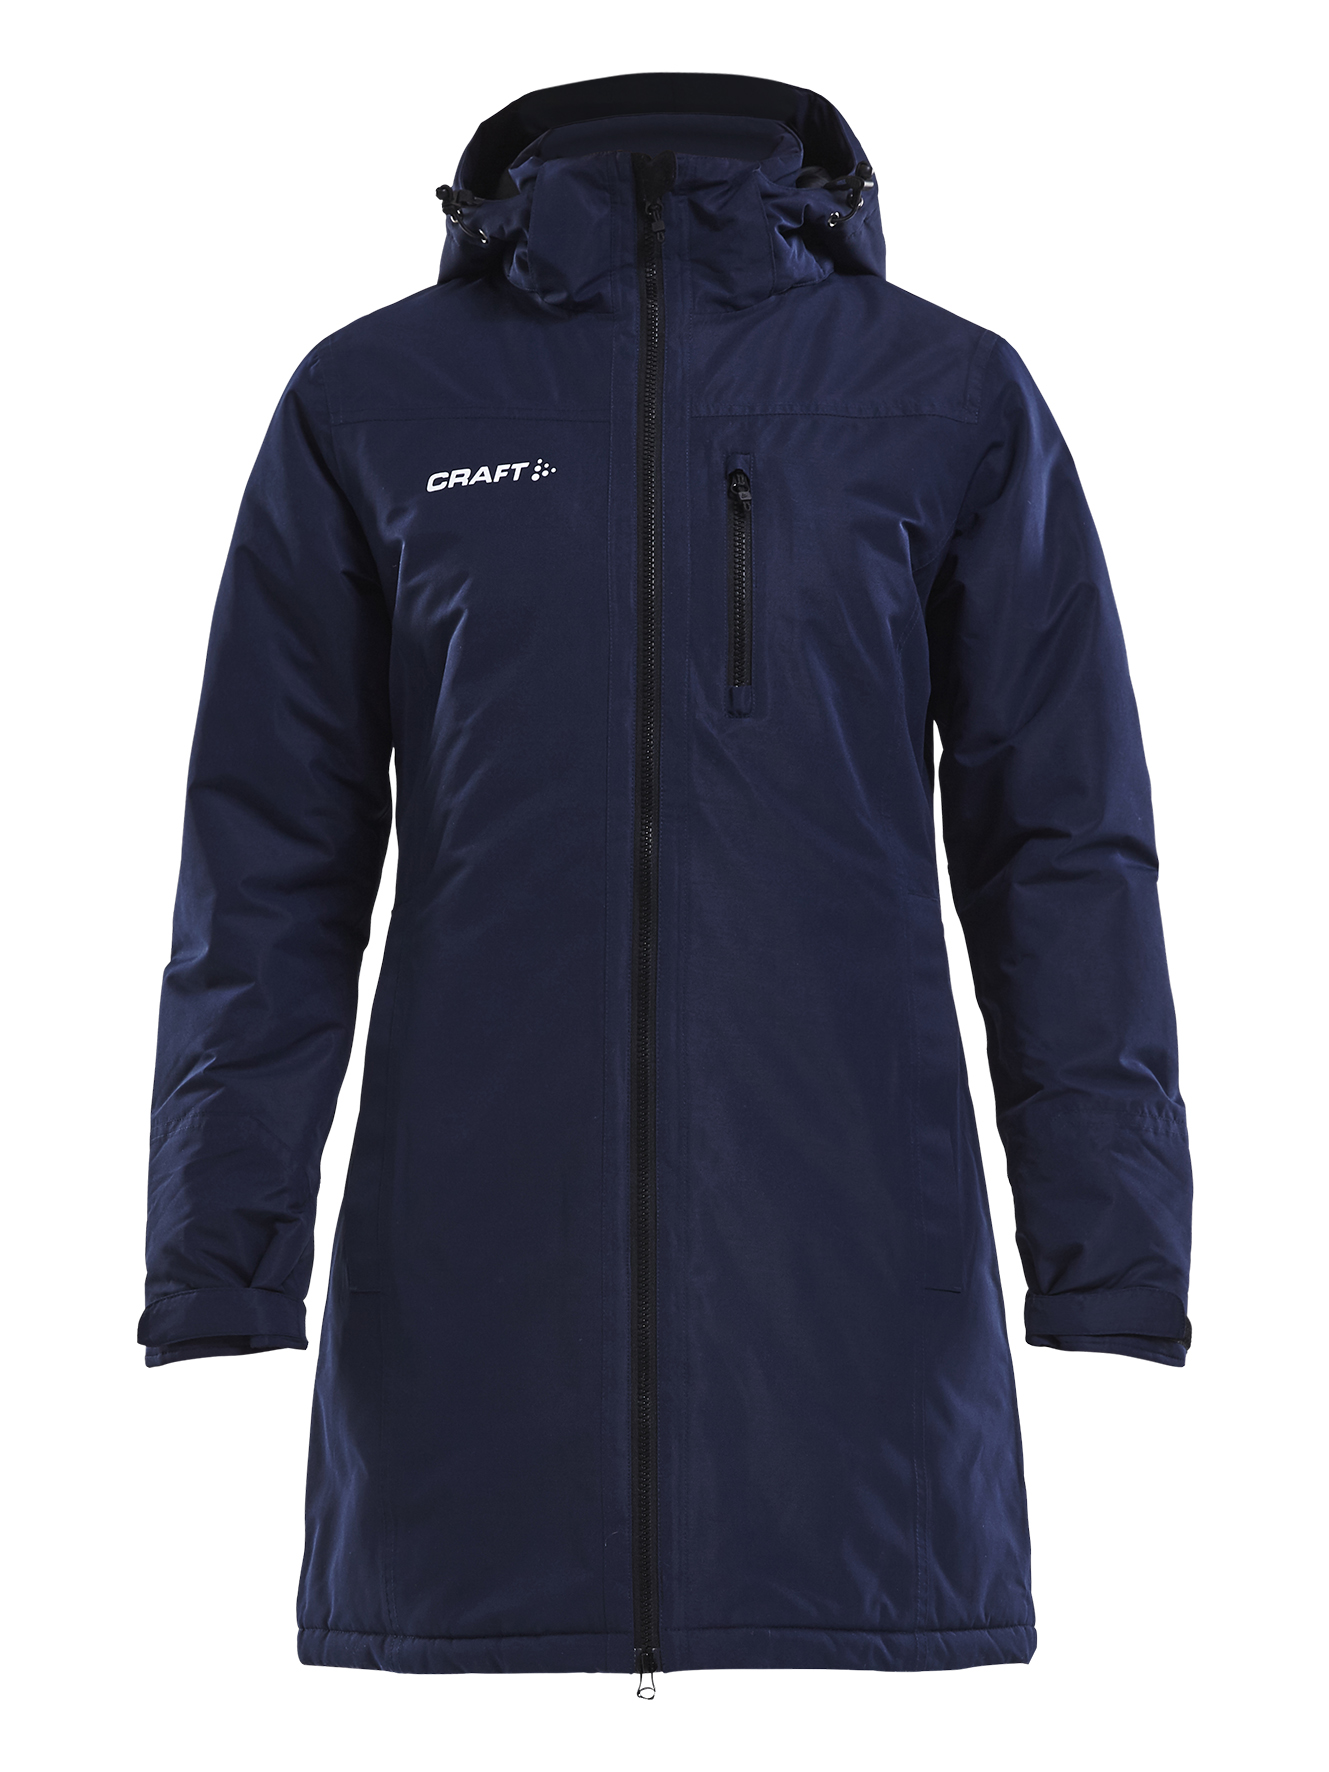 Craft Jacket Parkas W NAVY